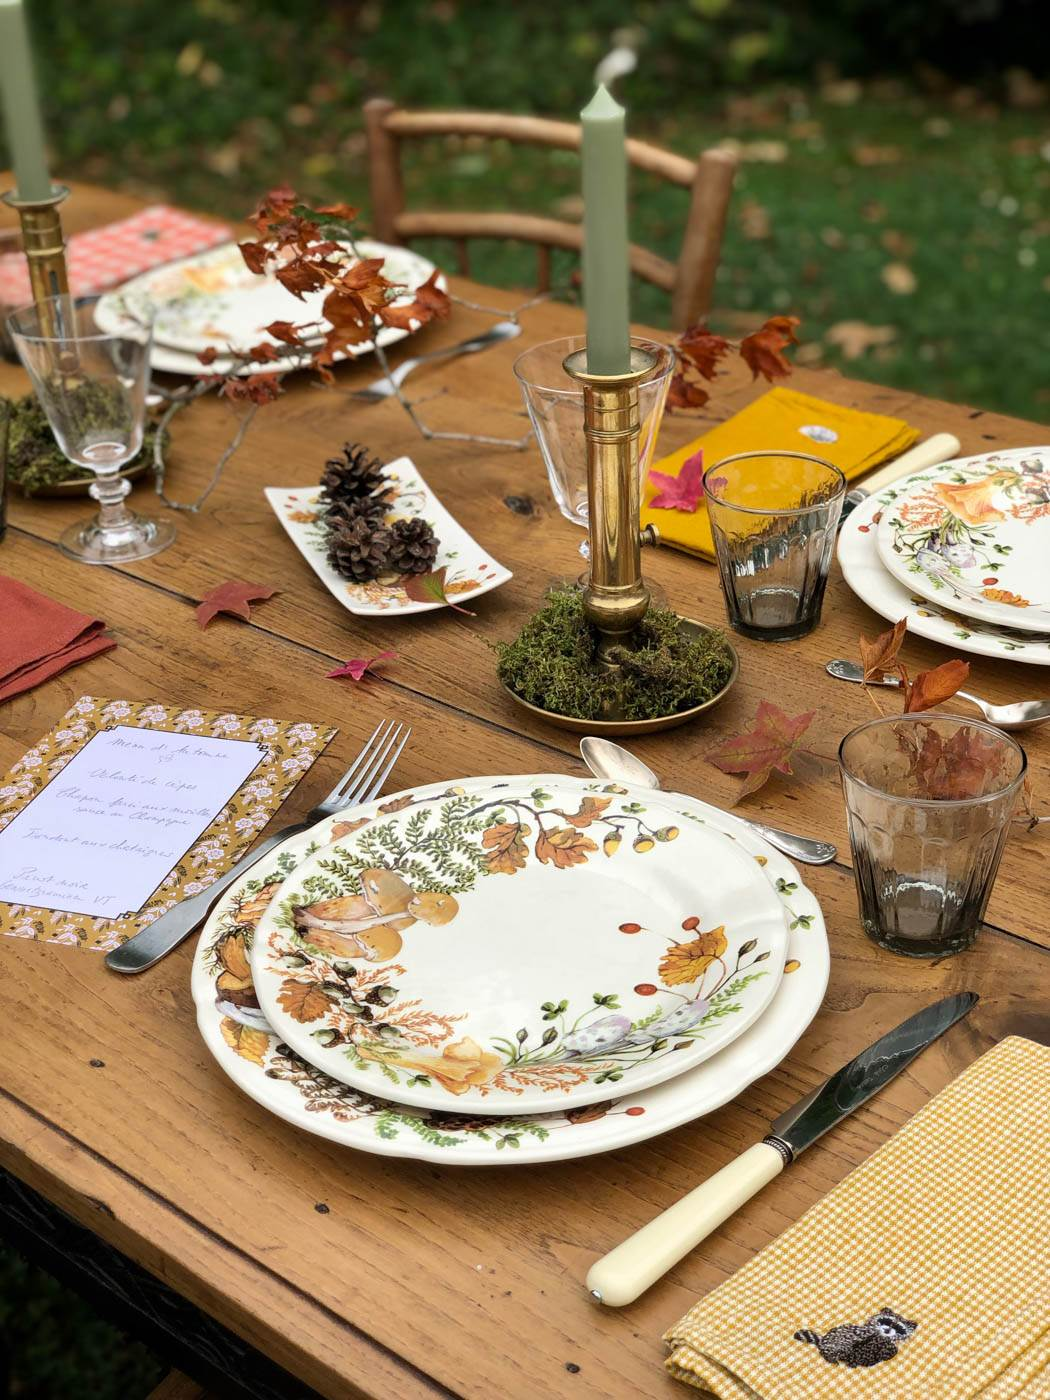 An outdoor Autumn table